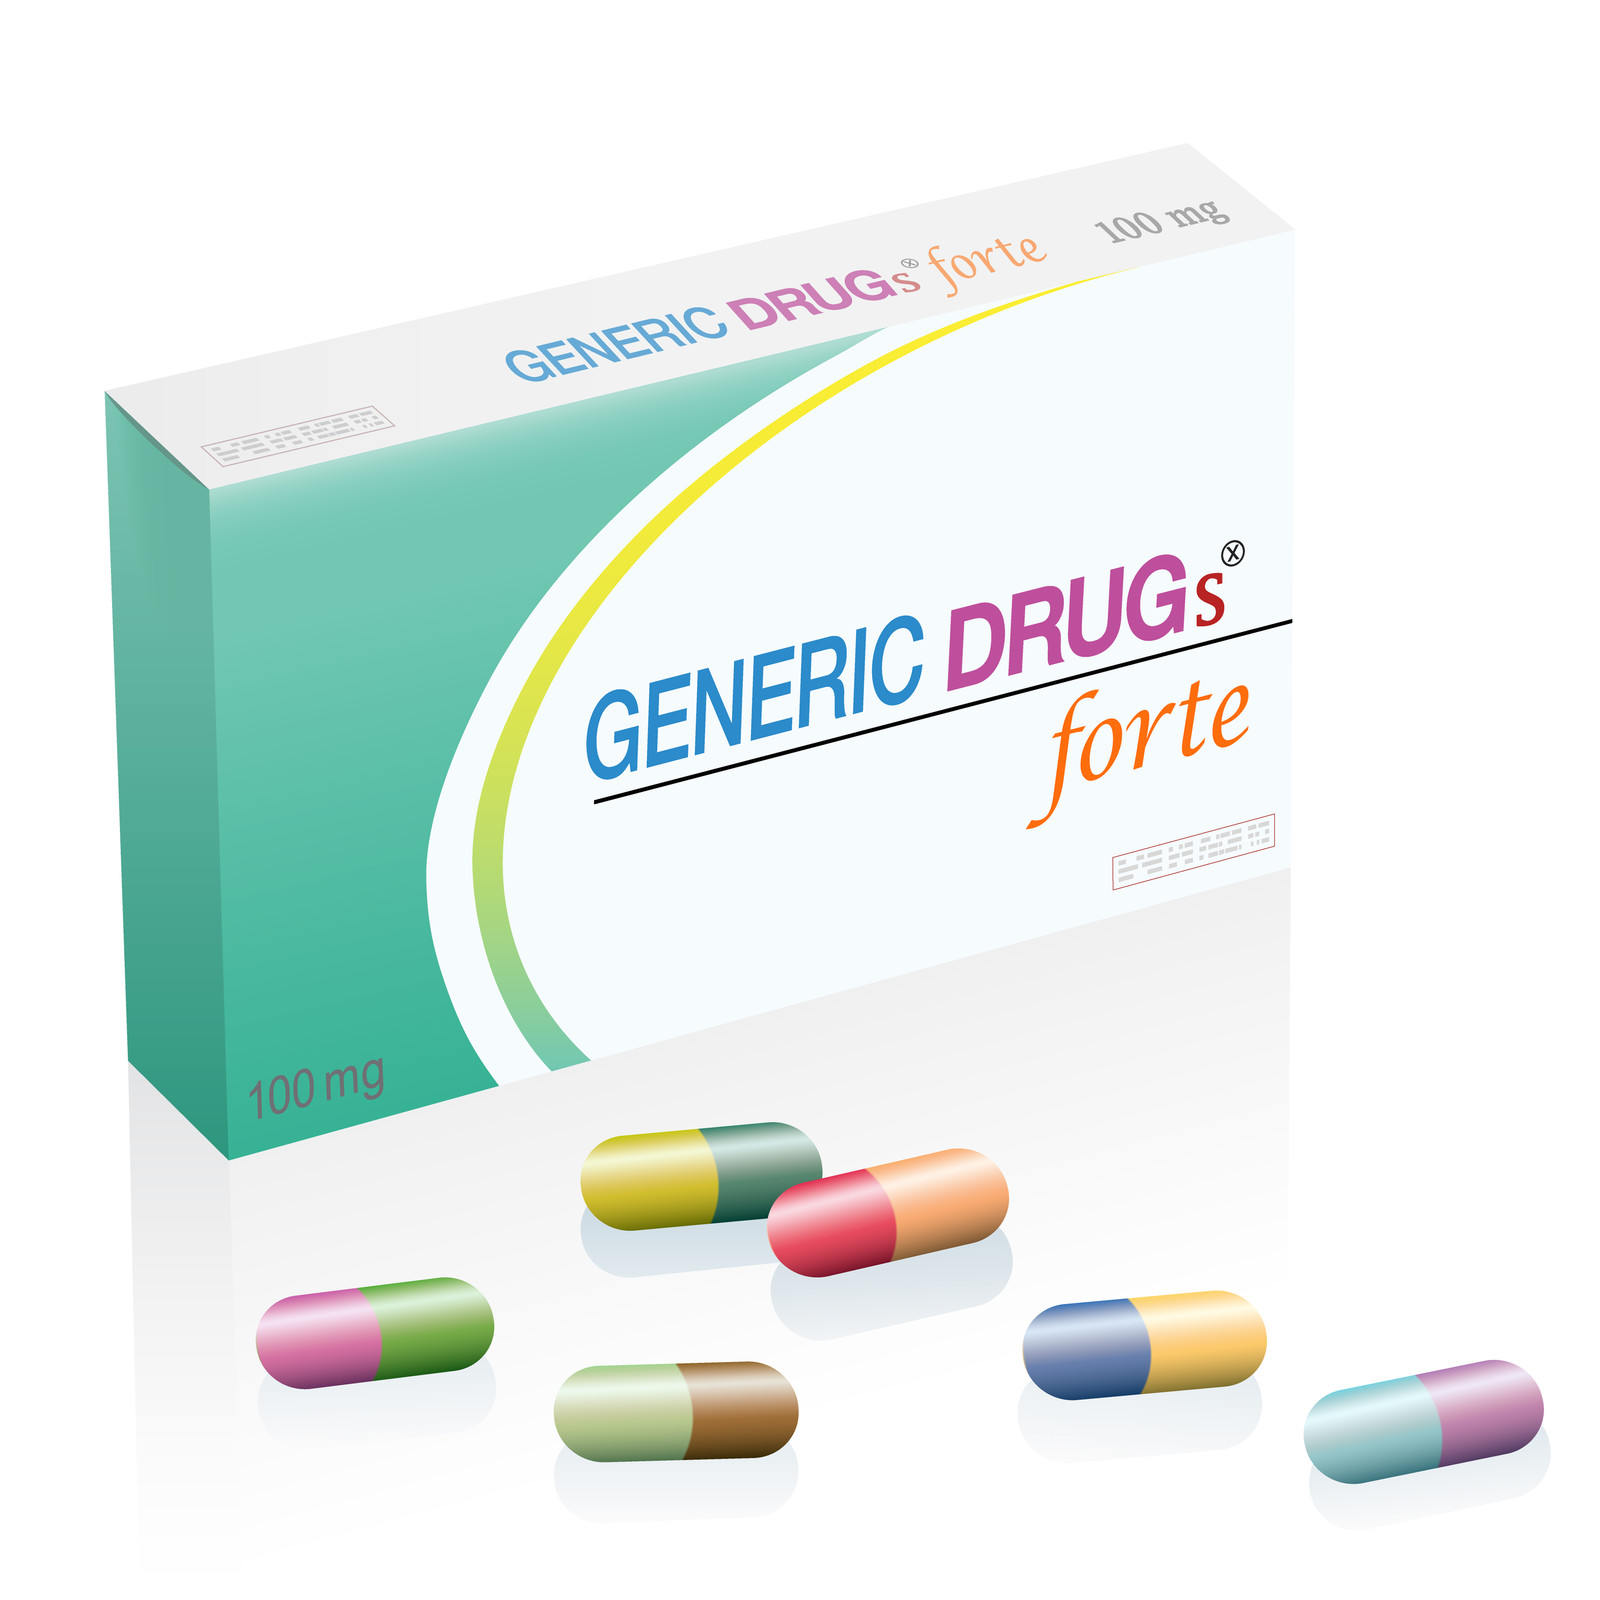 Generic drugs pill box with colorful capsules. Symbolizes harmful counterfeit pills, risk and danger of cheap or illegal produced